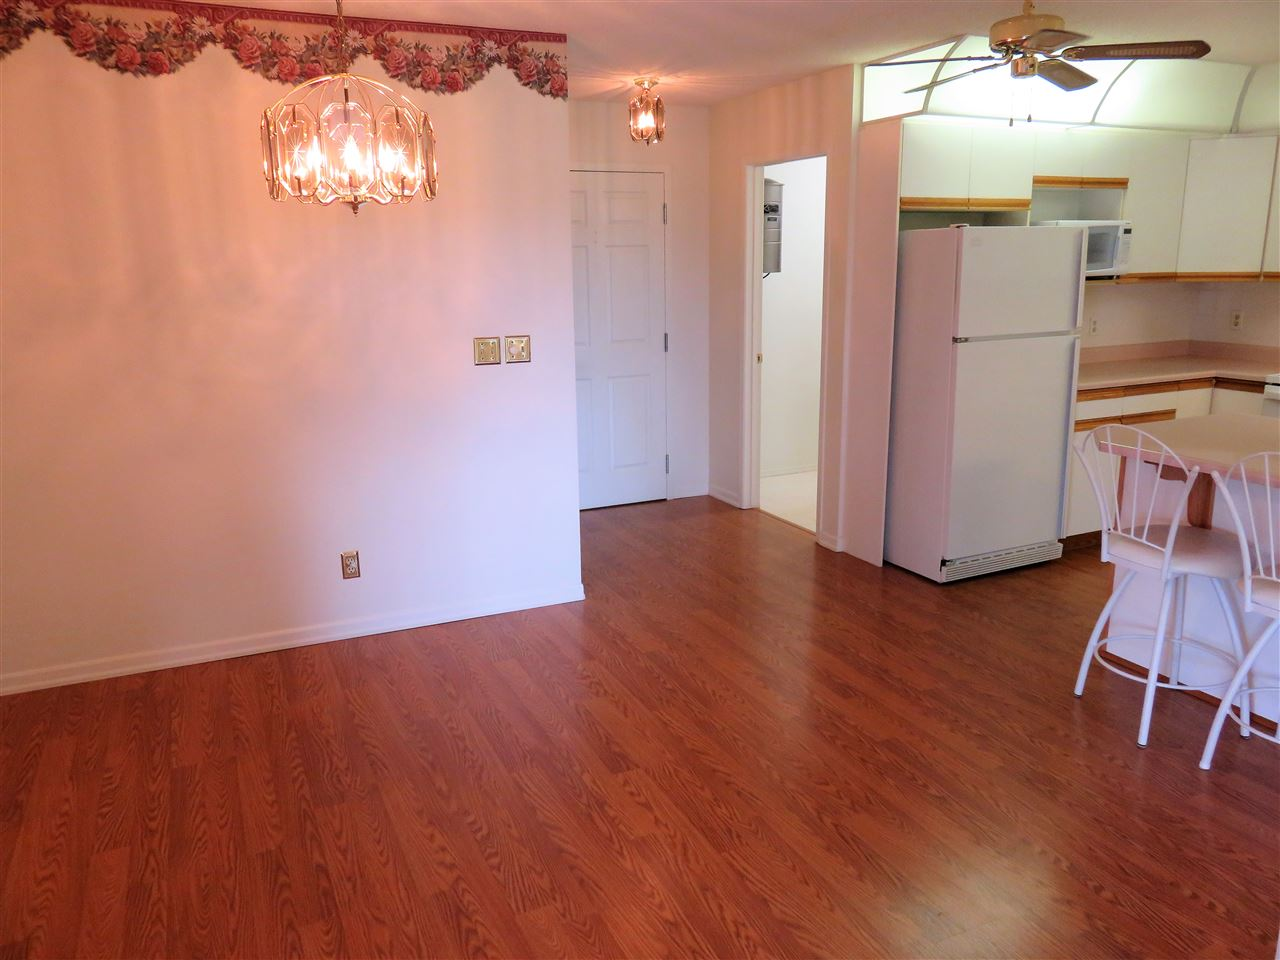 View of the whole Dining Room & Kitchen along with the front door & laundry room! :)